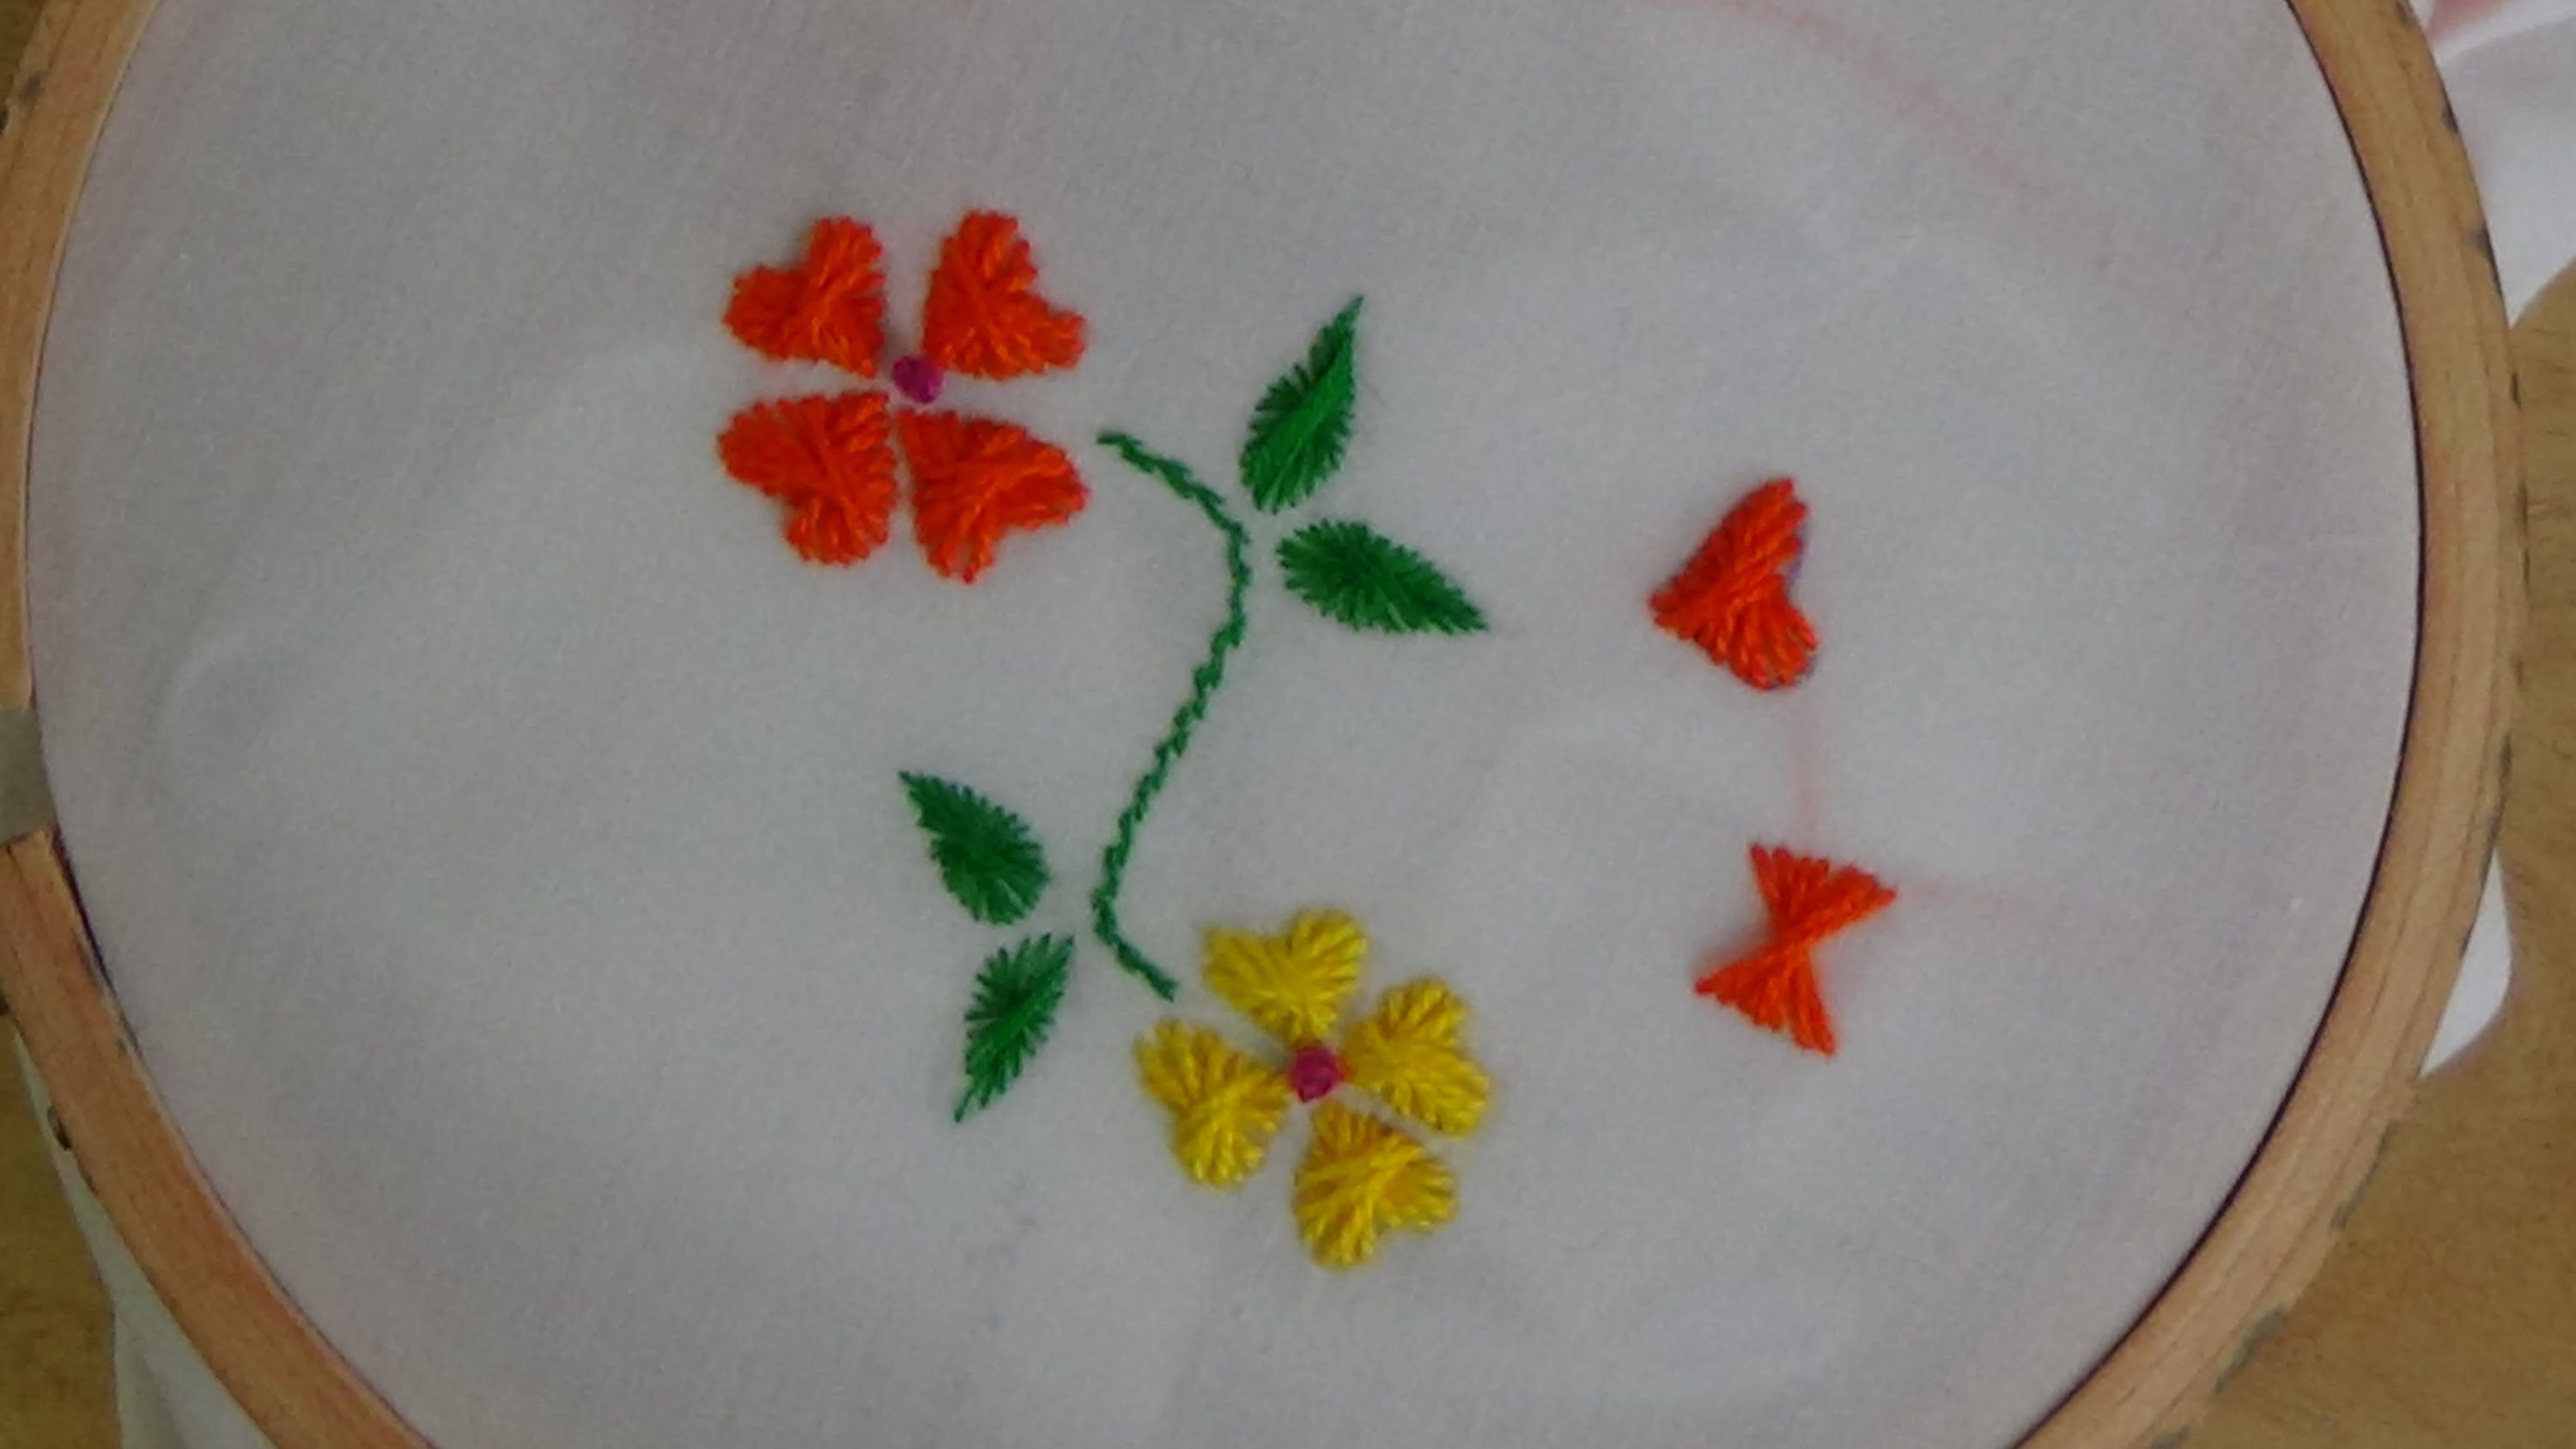 Hand Embroidery Butterfly Flower Stitch Hand Embroidery Tutorial Hand Embroidery Embroidery Tutorials